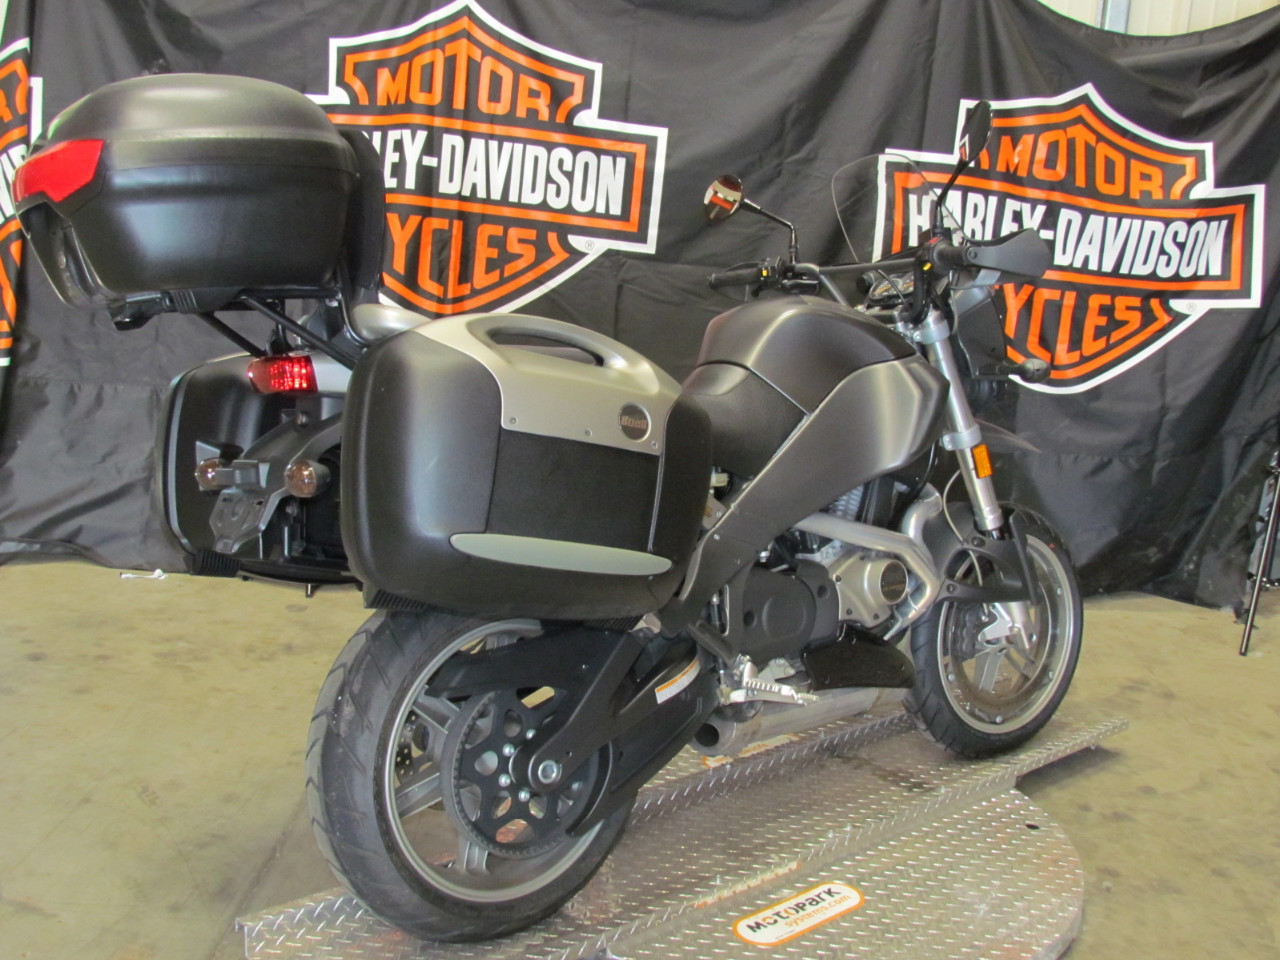 2006 Buell Ulysses XB12X, motorcycle listing